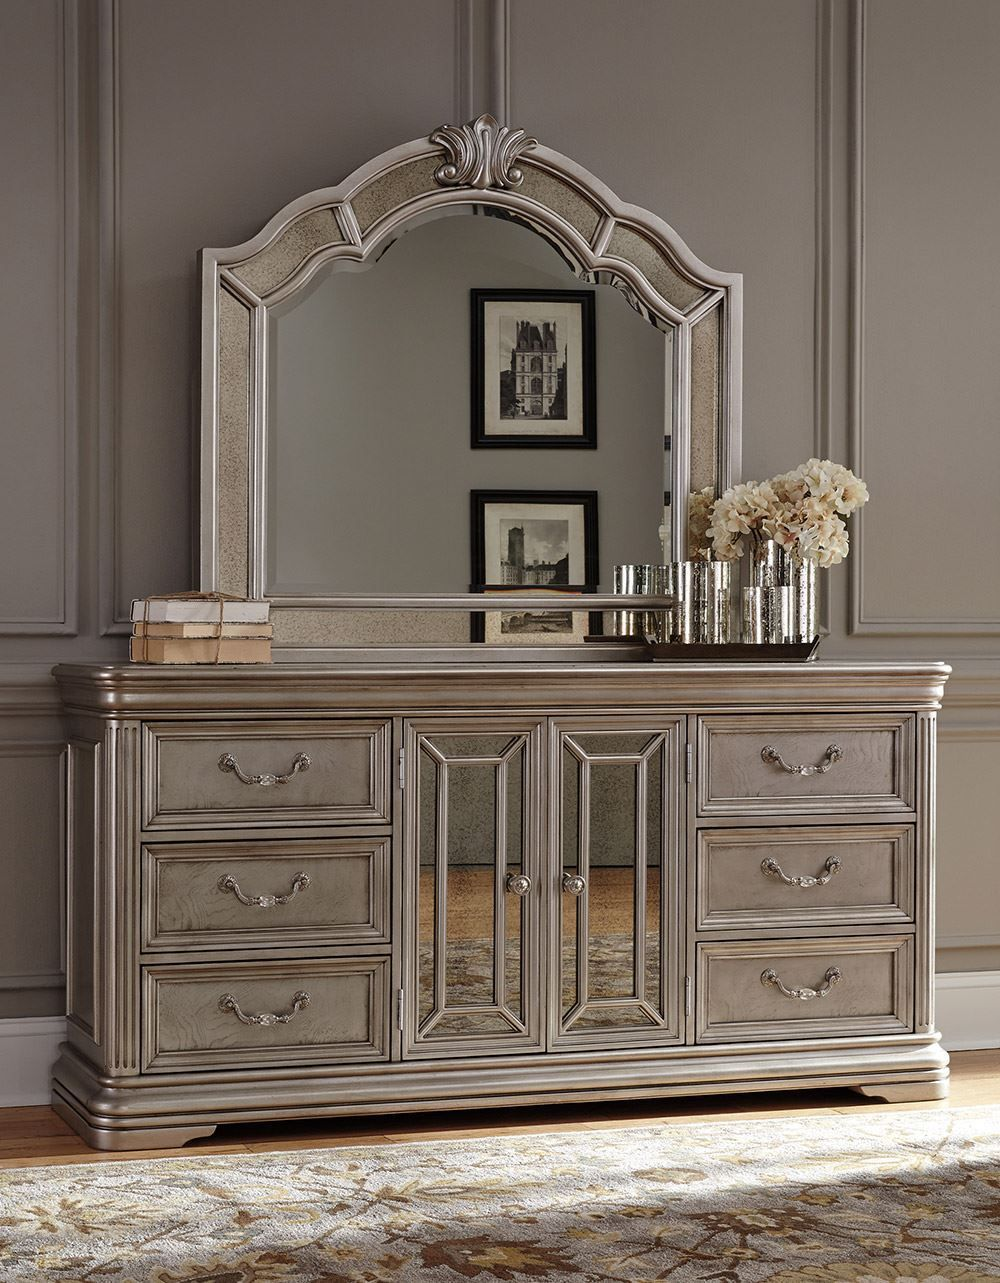 Picture of Birlanny Dresser and Mirror Set